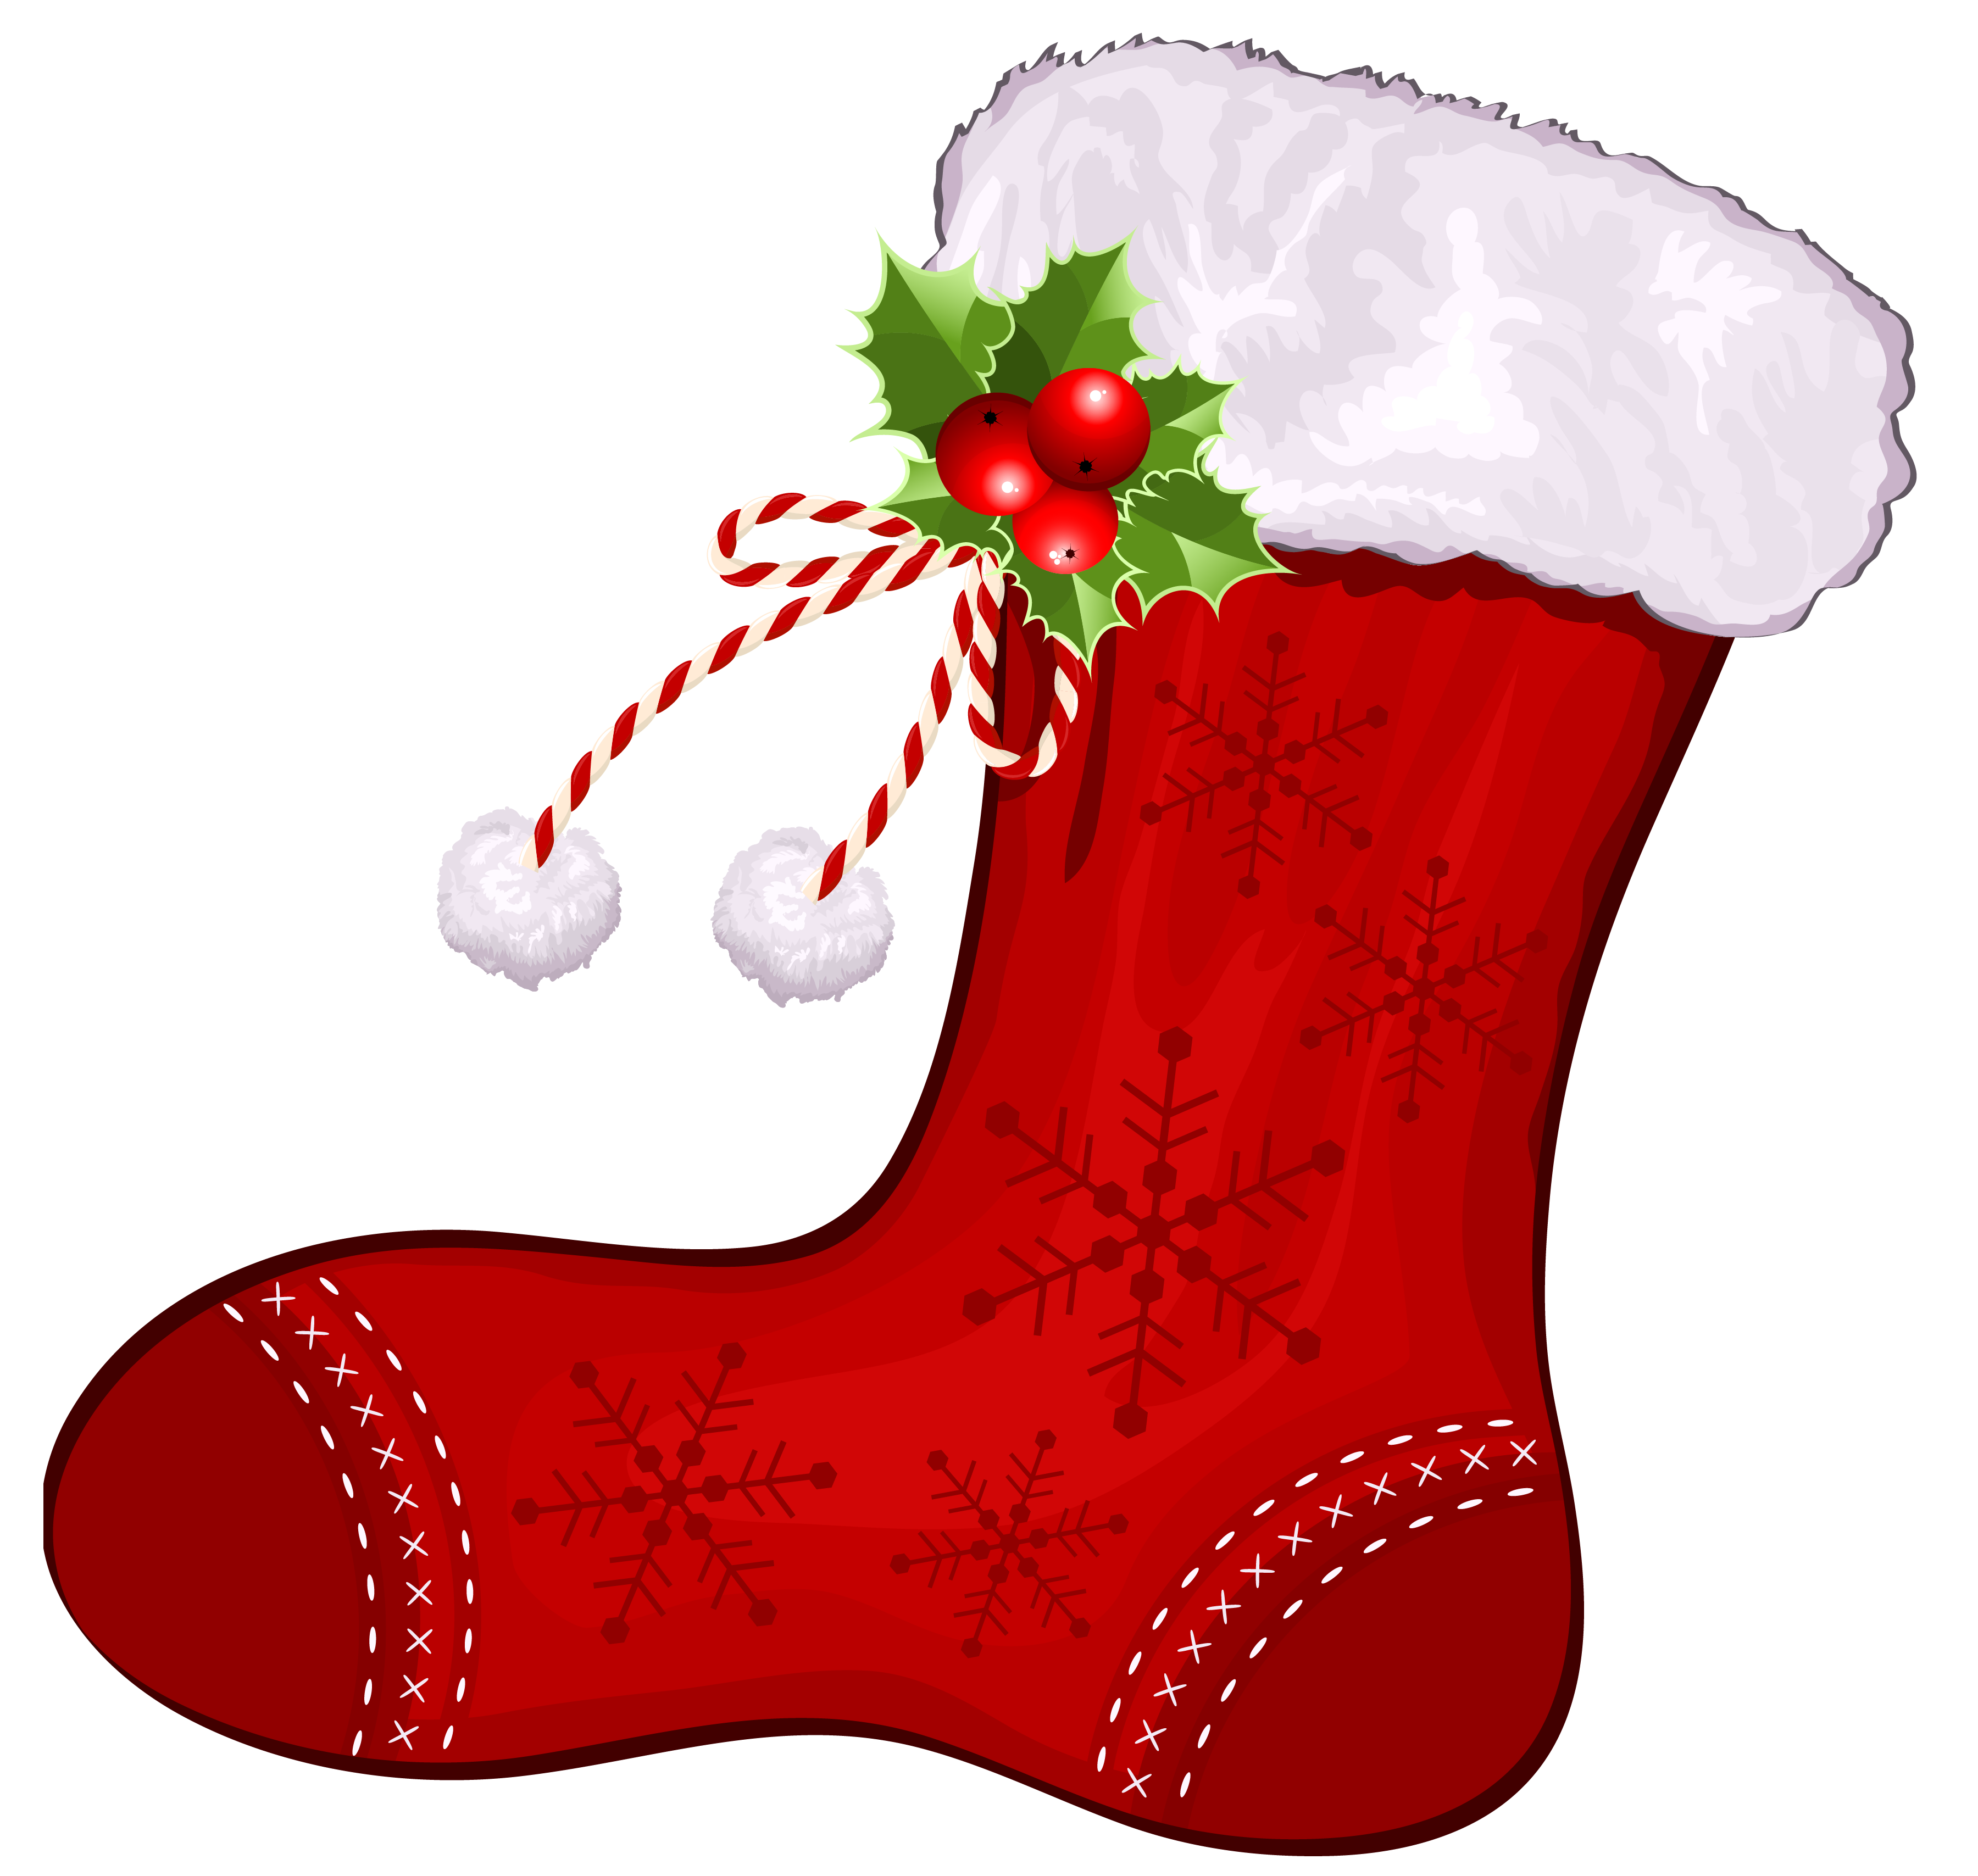 Large Transparent Christmas Red Stocking PNG Clipart.